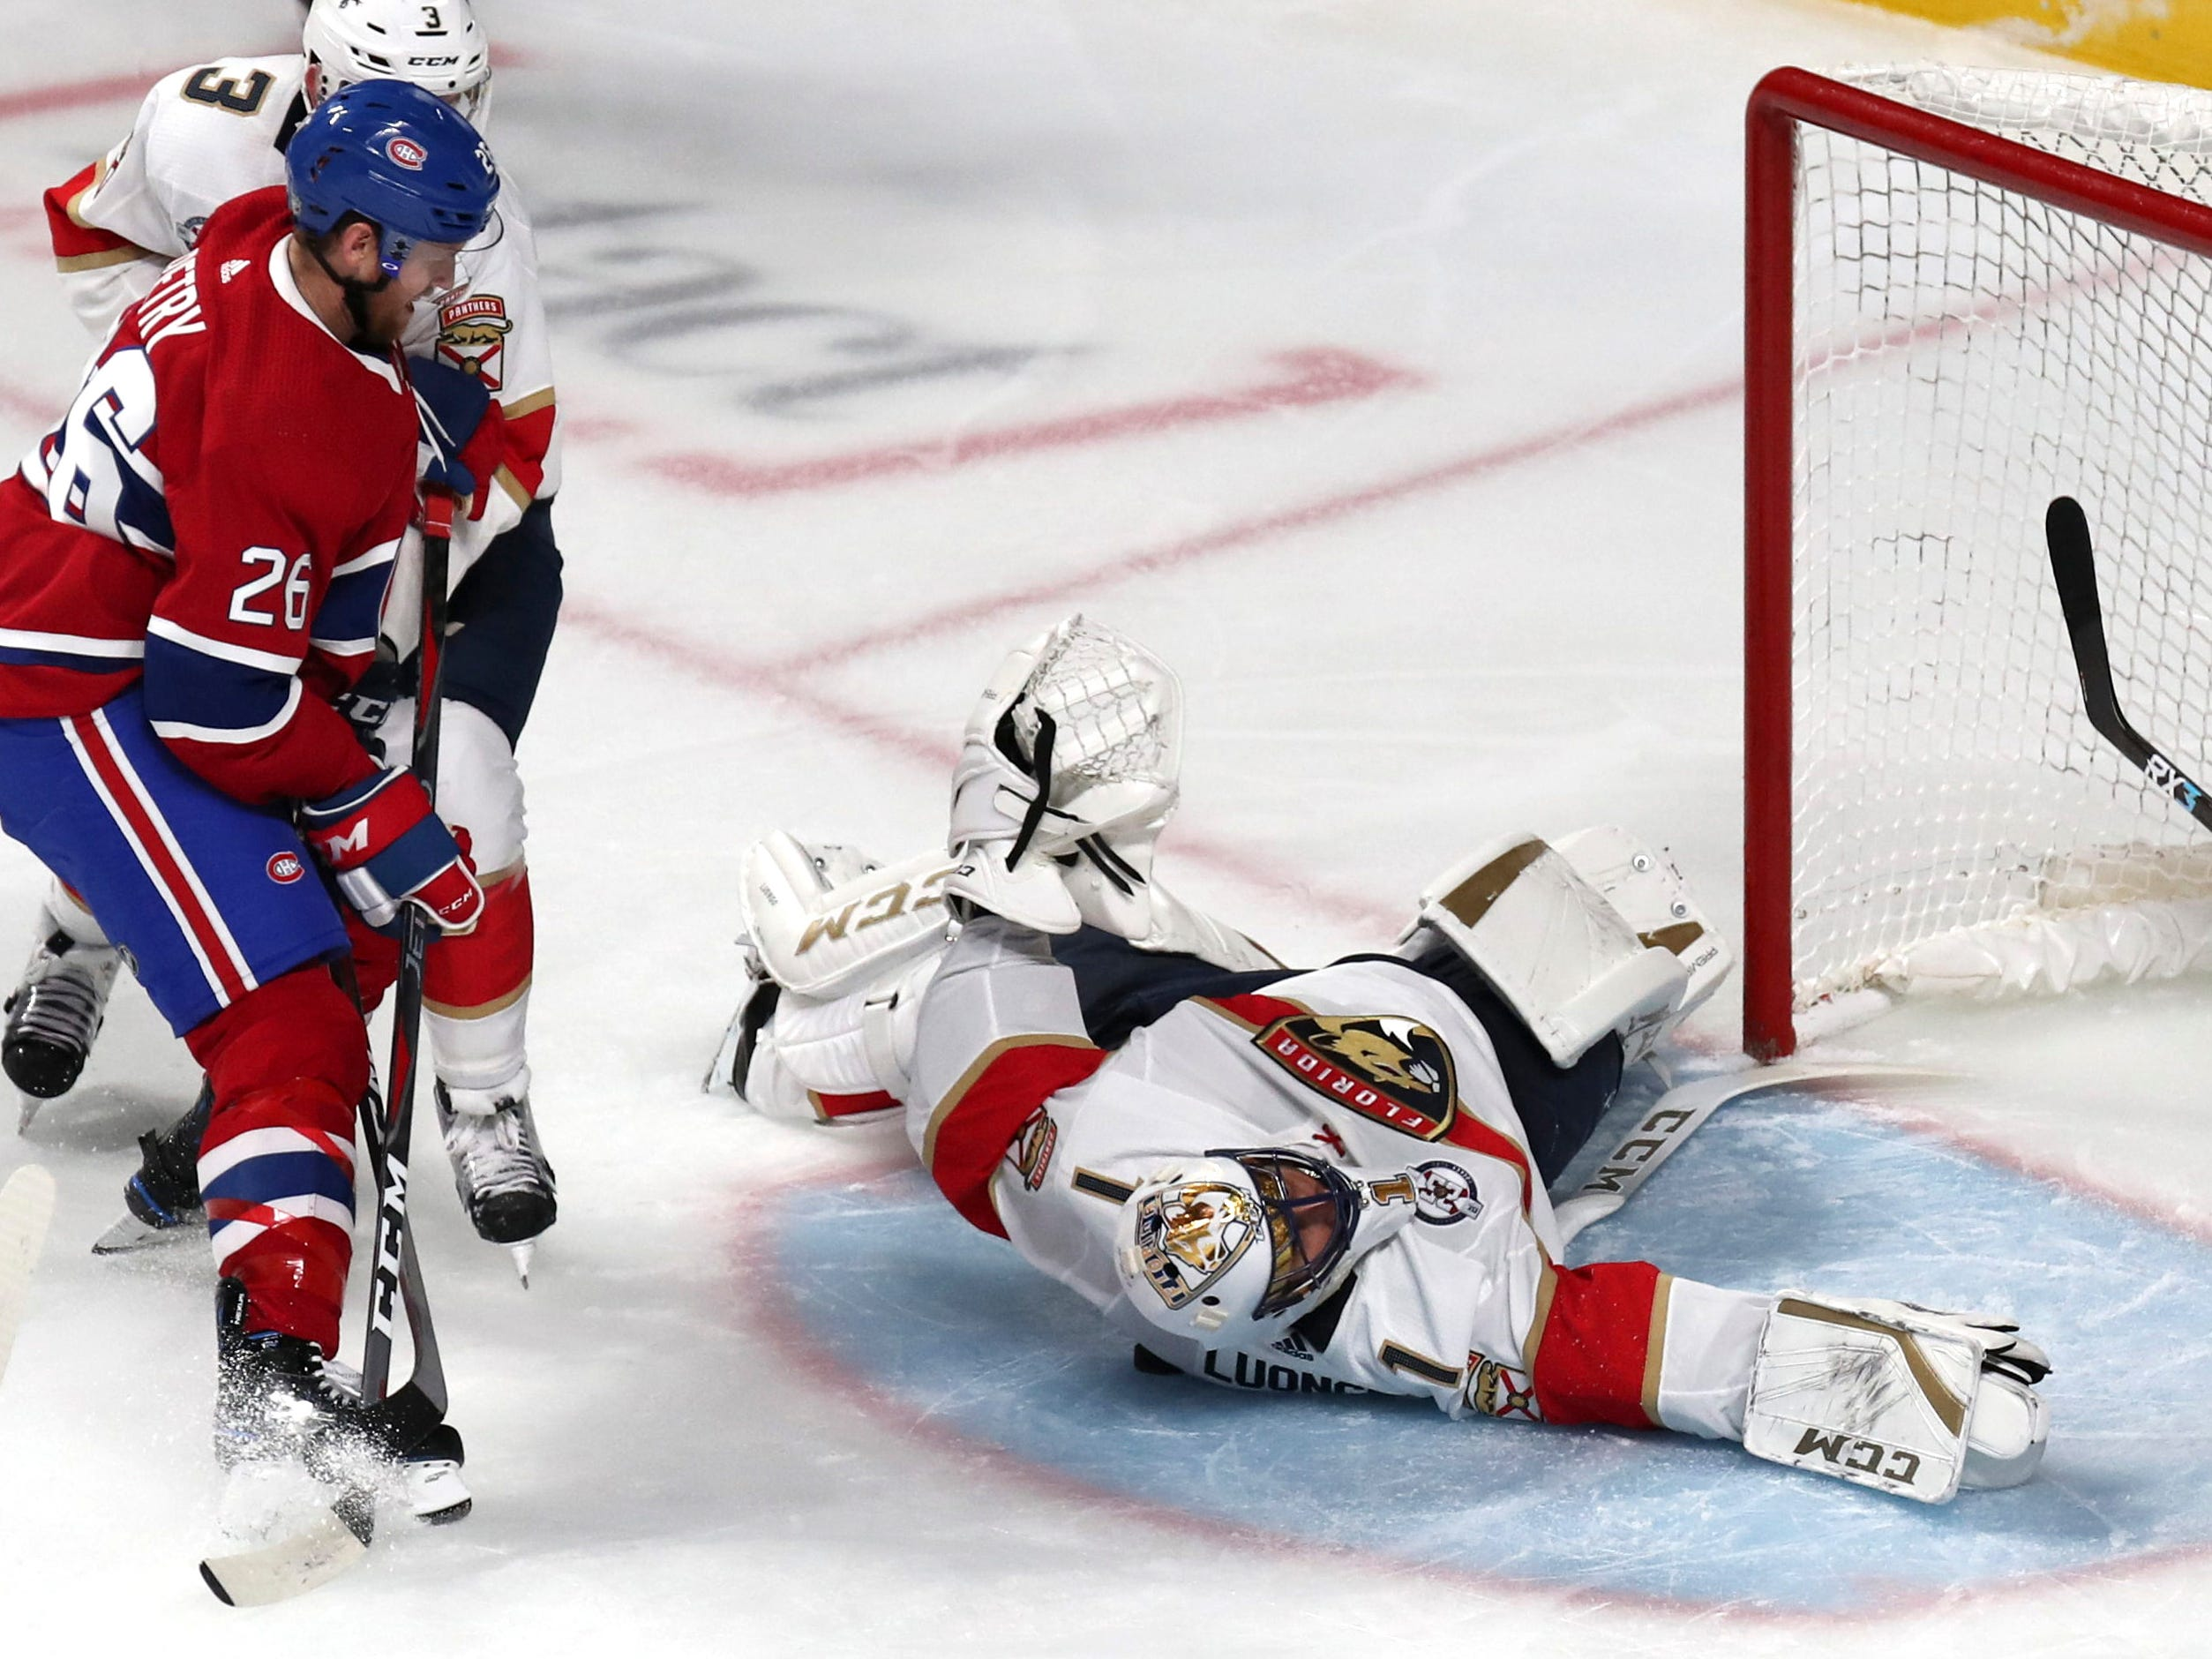 Sept. 19: Florida Panthers goaltender Roberto Luongo makes a save against Montreal Canadiens defenseman Jeff Petry while sprawled on the ice.